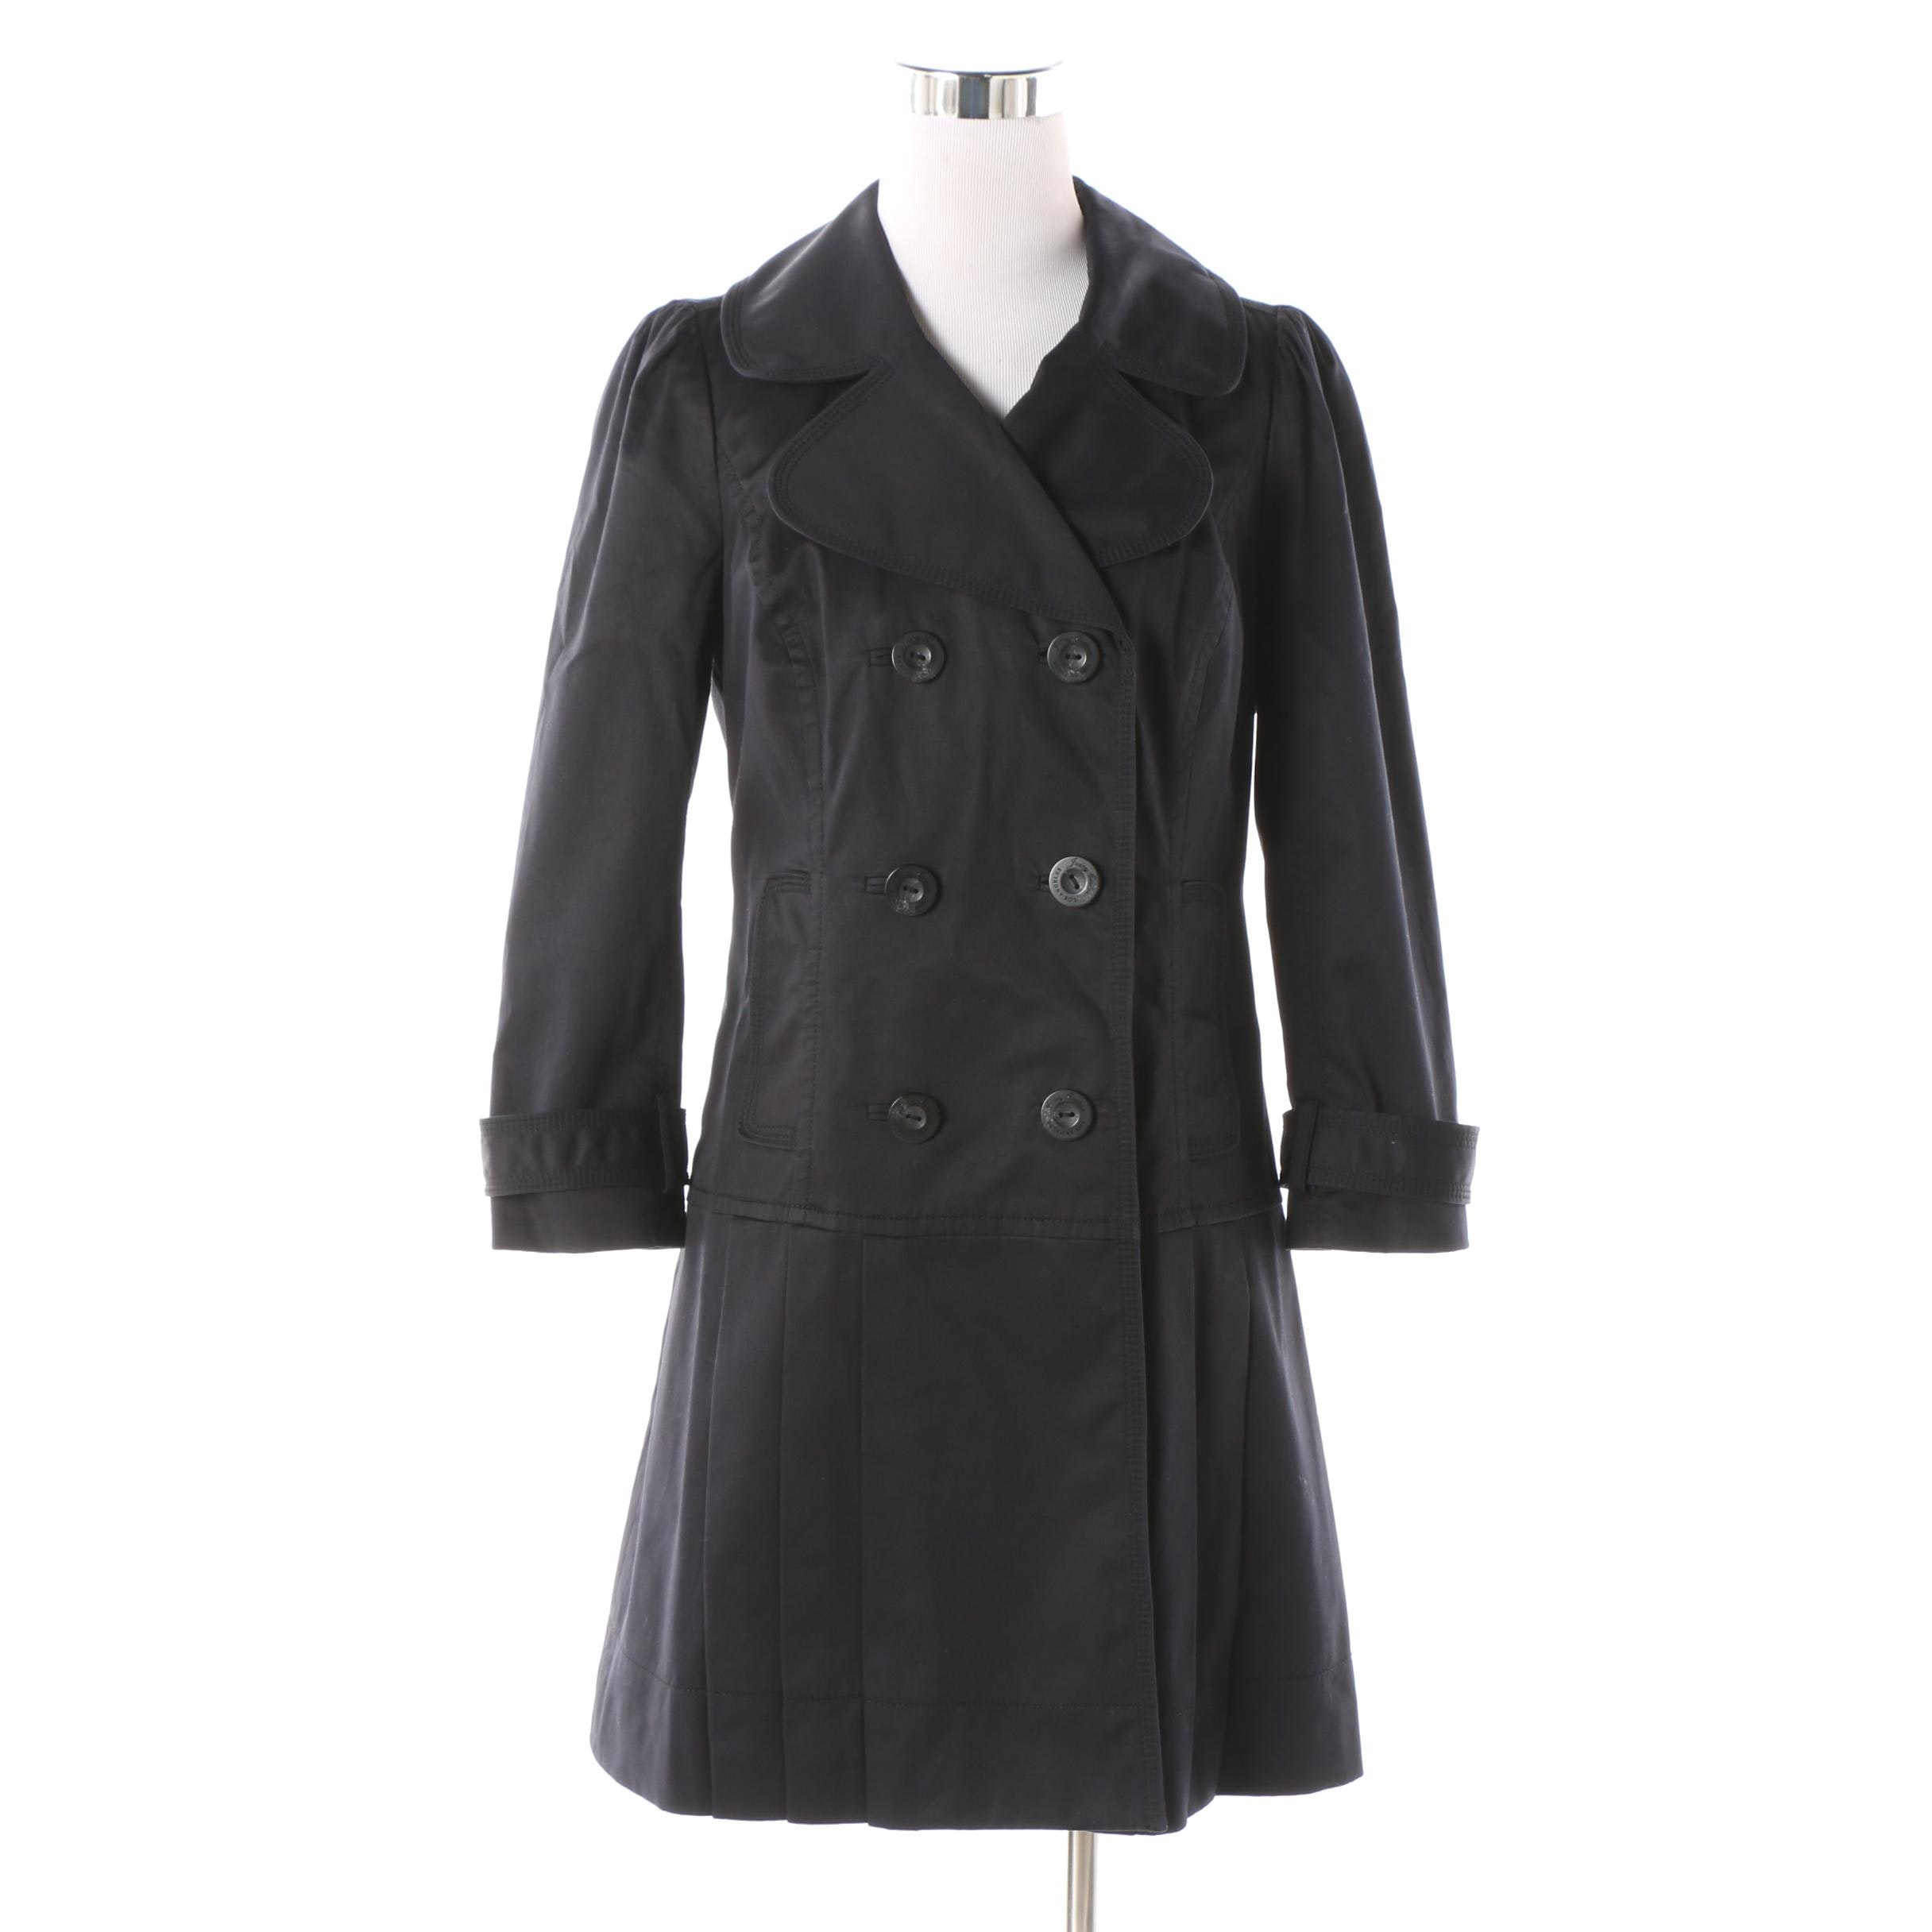 Women's Juicy Couture Black Cotton Blend Double-Breasted Raincoat